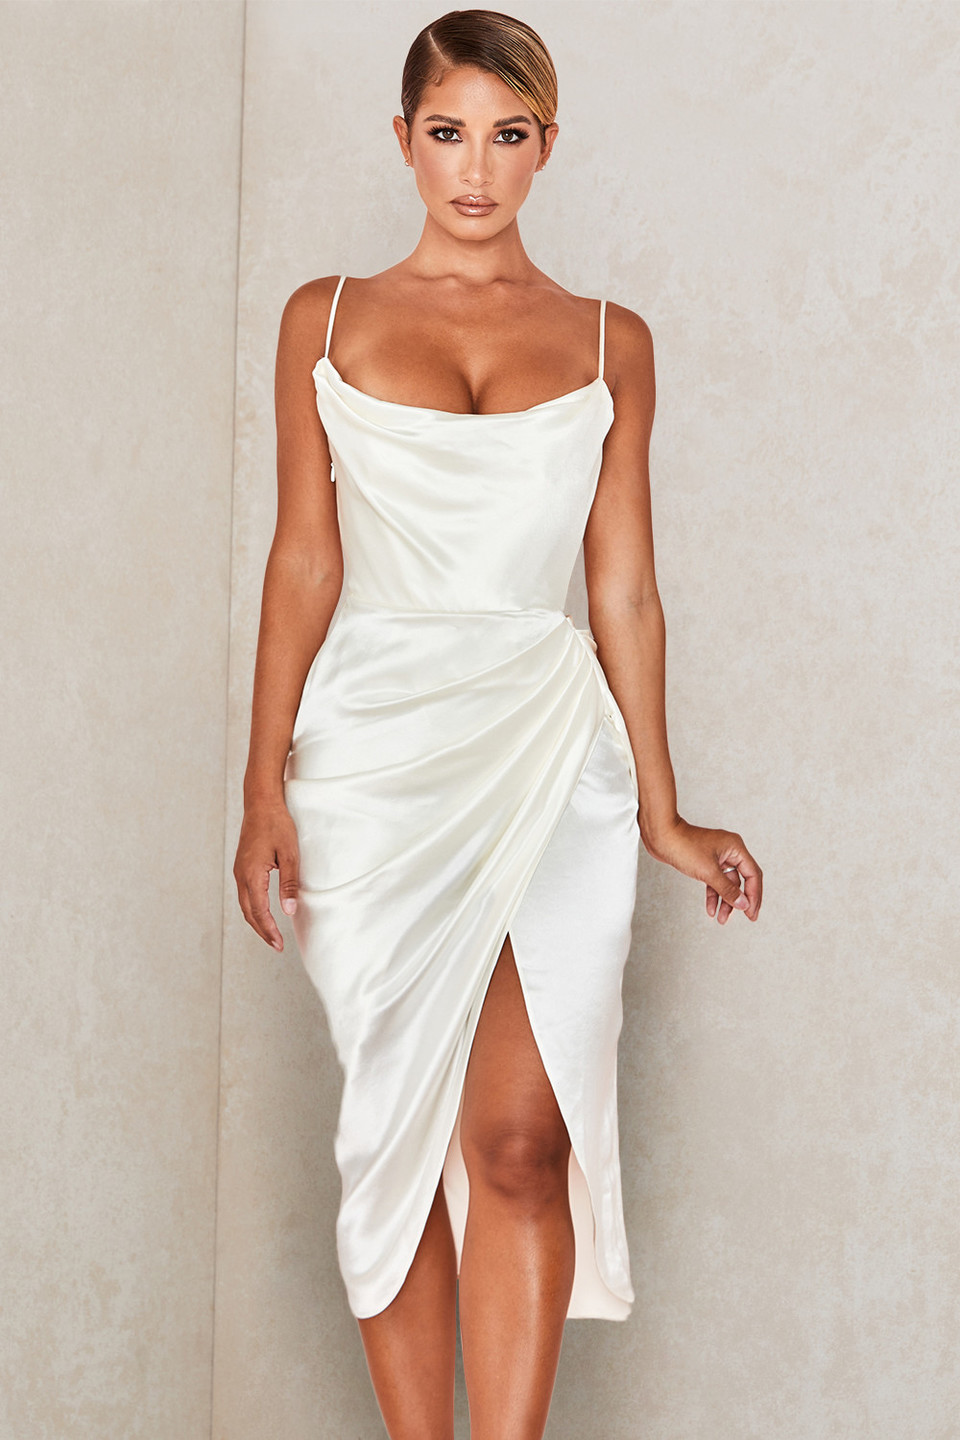 Reva Ivory Satin Balcony Corset Dress